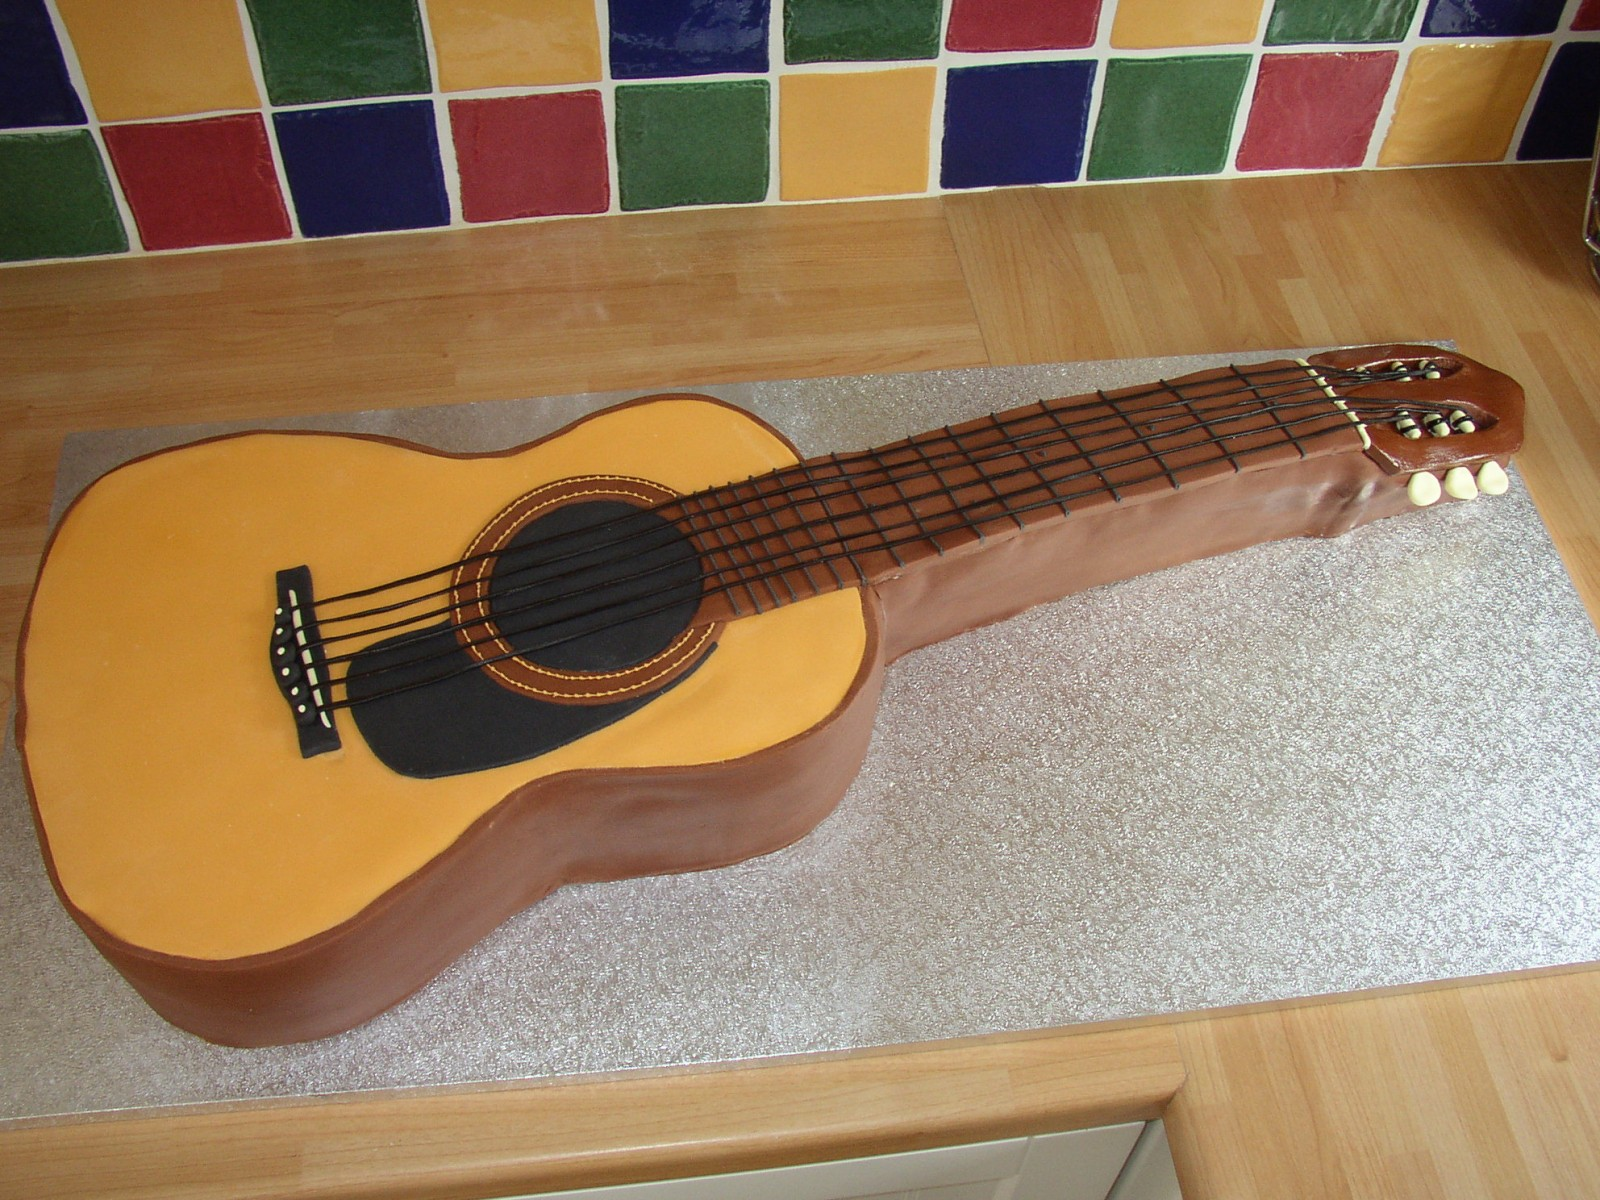 Guitar Cake Images With Name : Classical Guitar Novelty Birthday Cake   Susie s Cakes